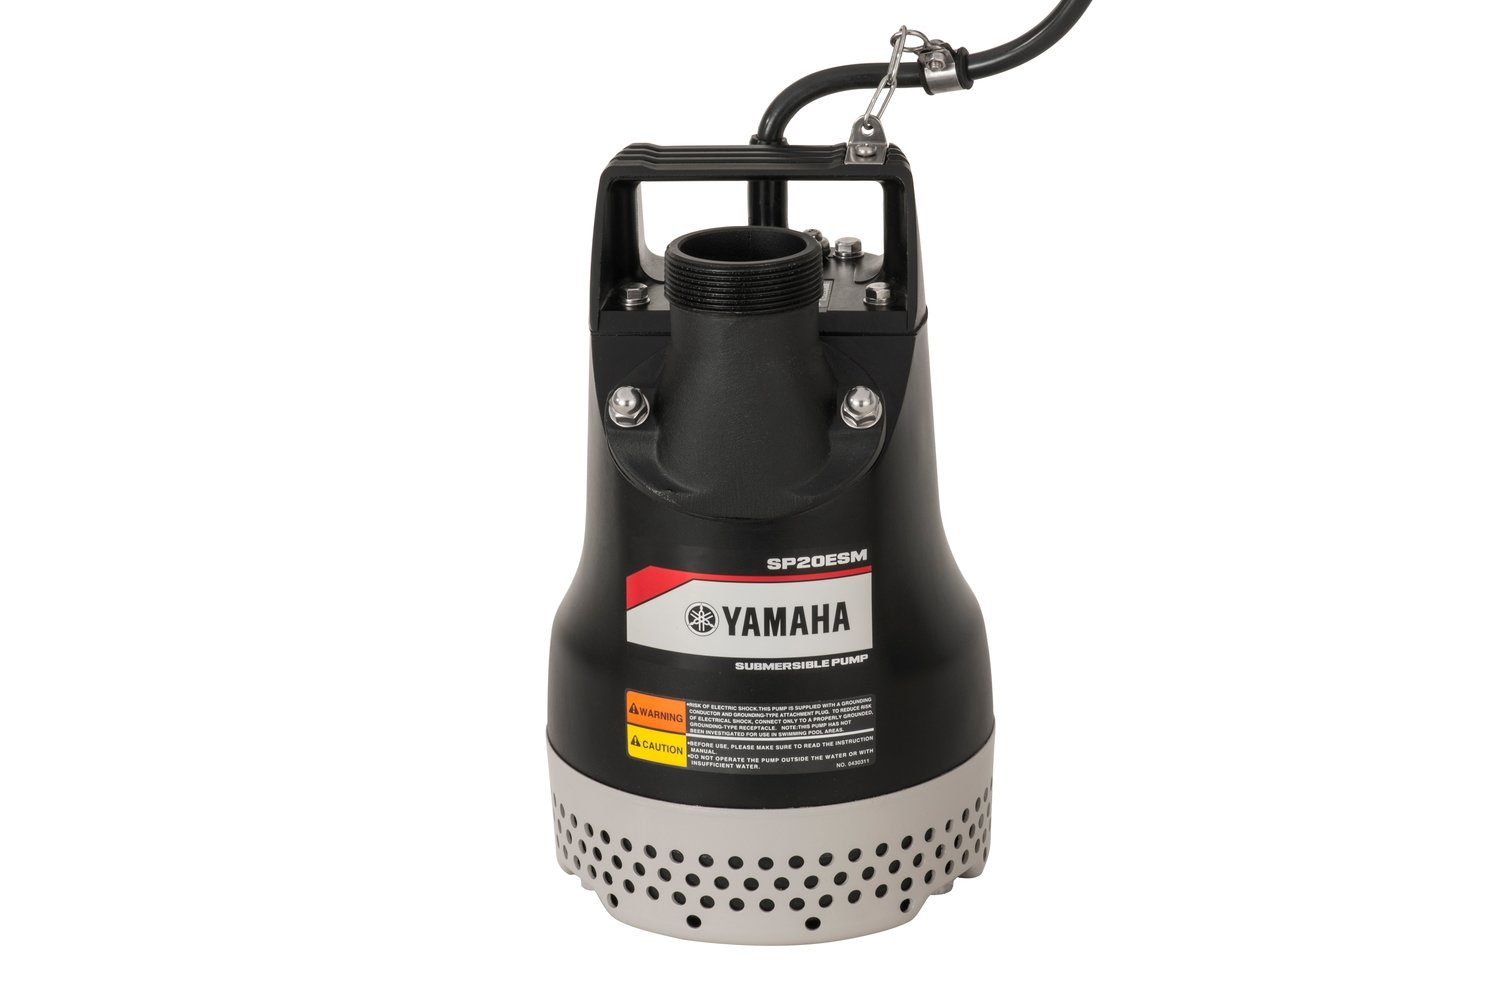 Yamaha® SP20ESM Submersible Pump